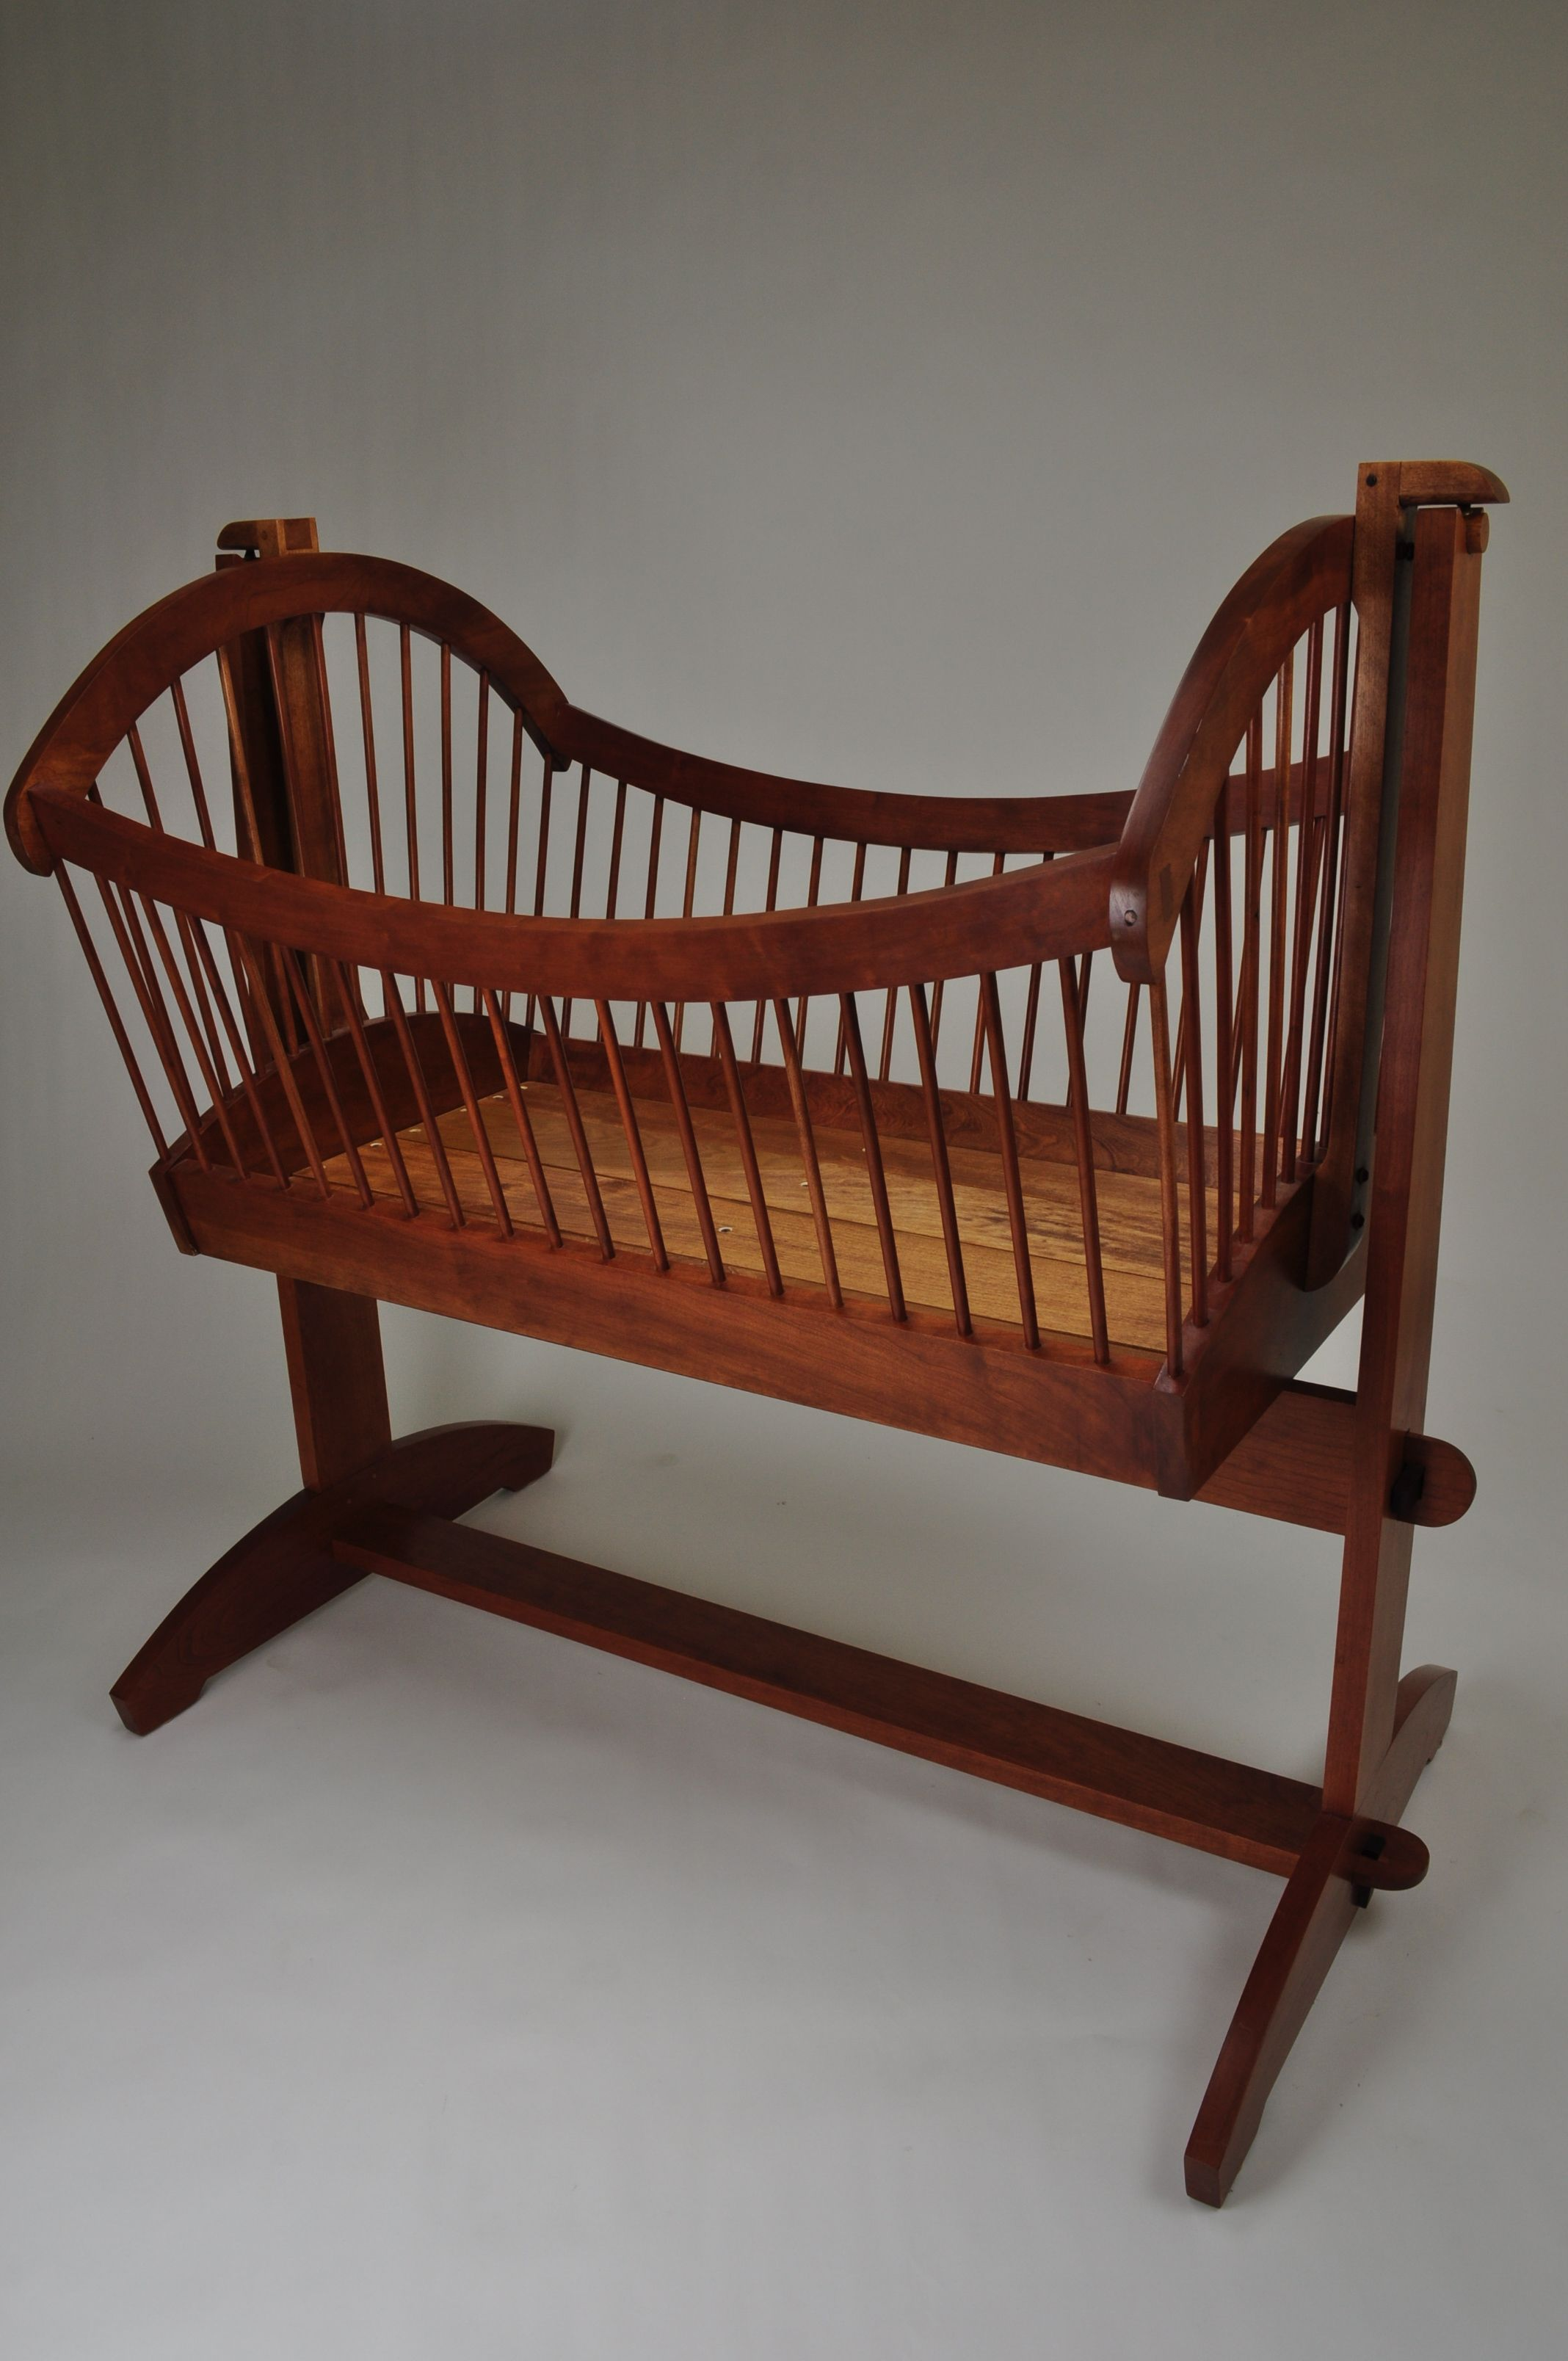 Baby cribs and cradles - Simple Wooden Baby Cradle With Natural Brown Color Scheme From The Wood Element And Small Spoke